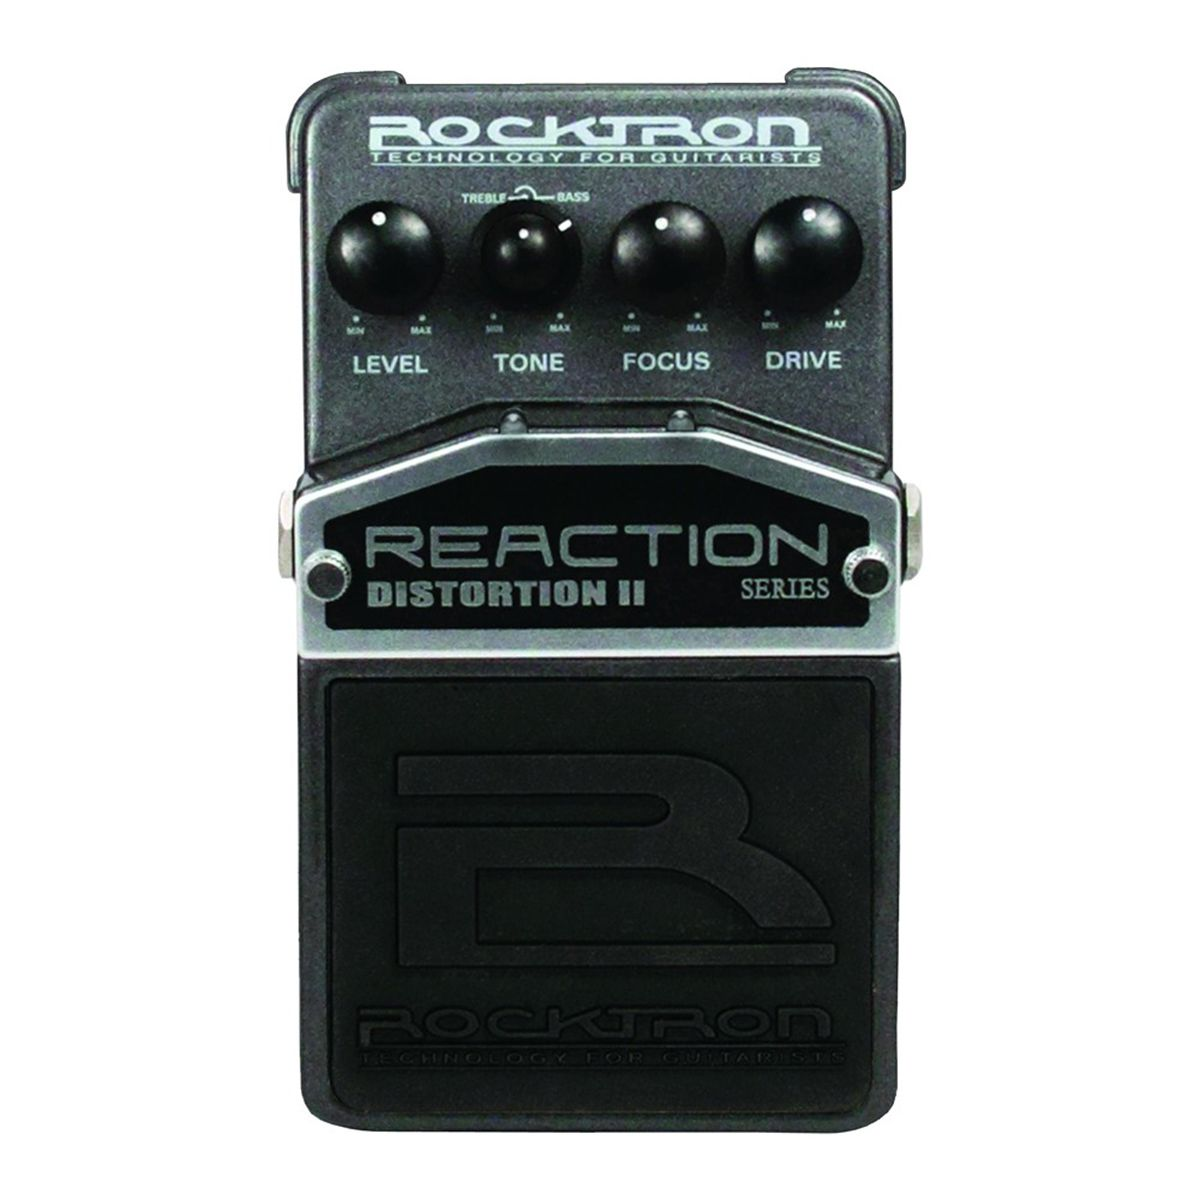 Pedal de Efeitos Rocktron Reaction Distortion II